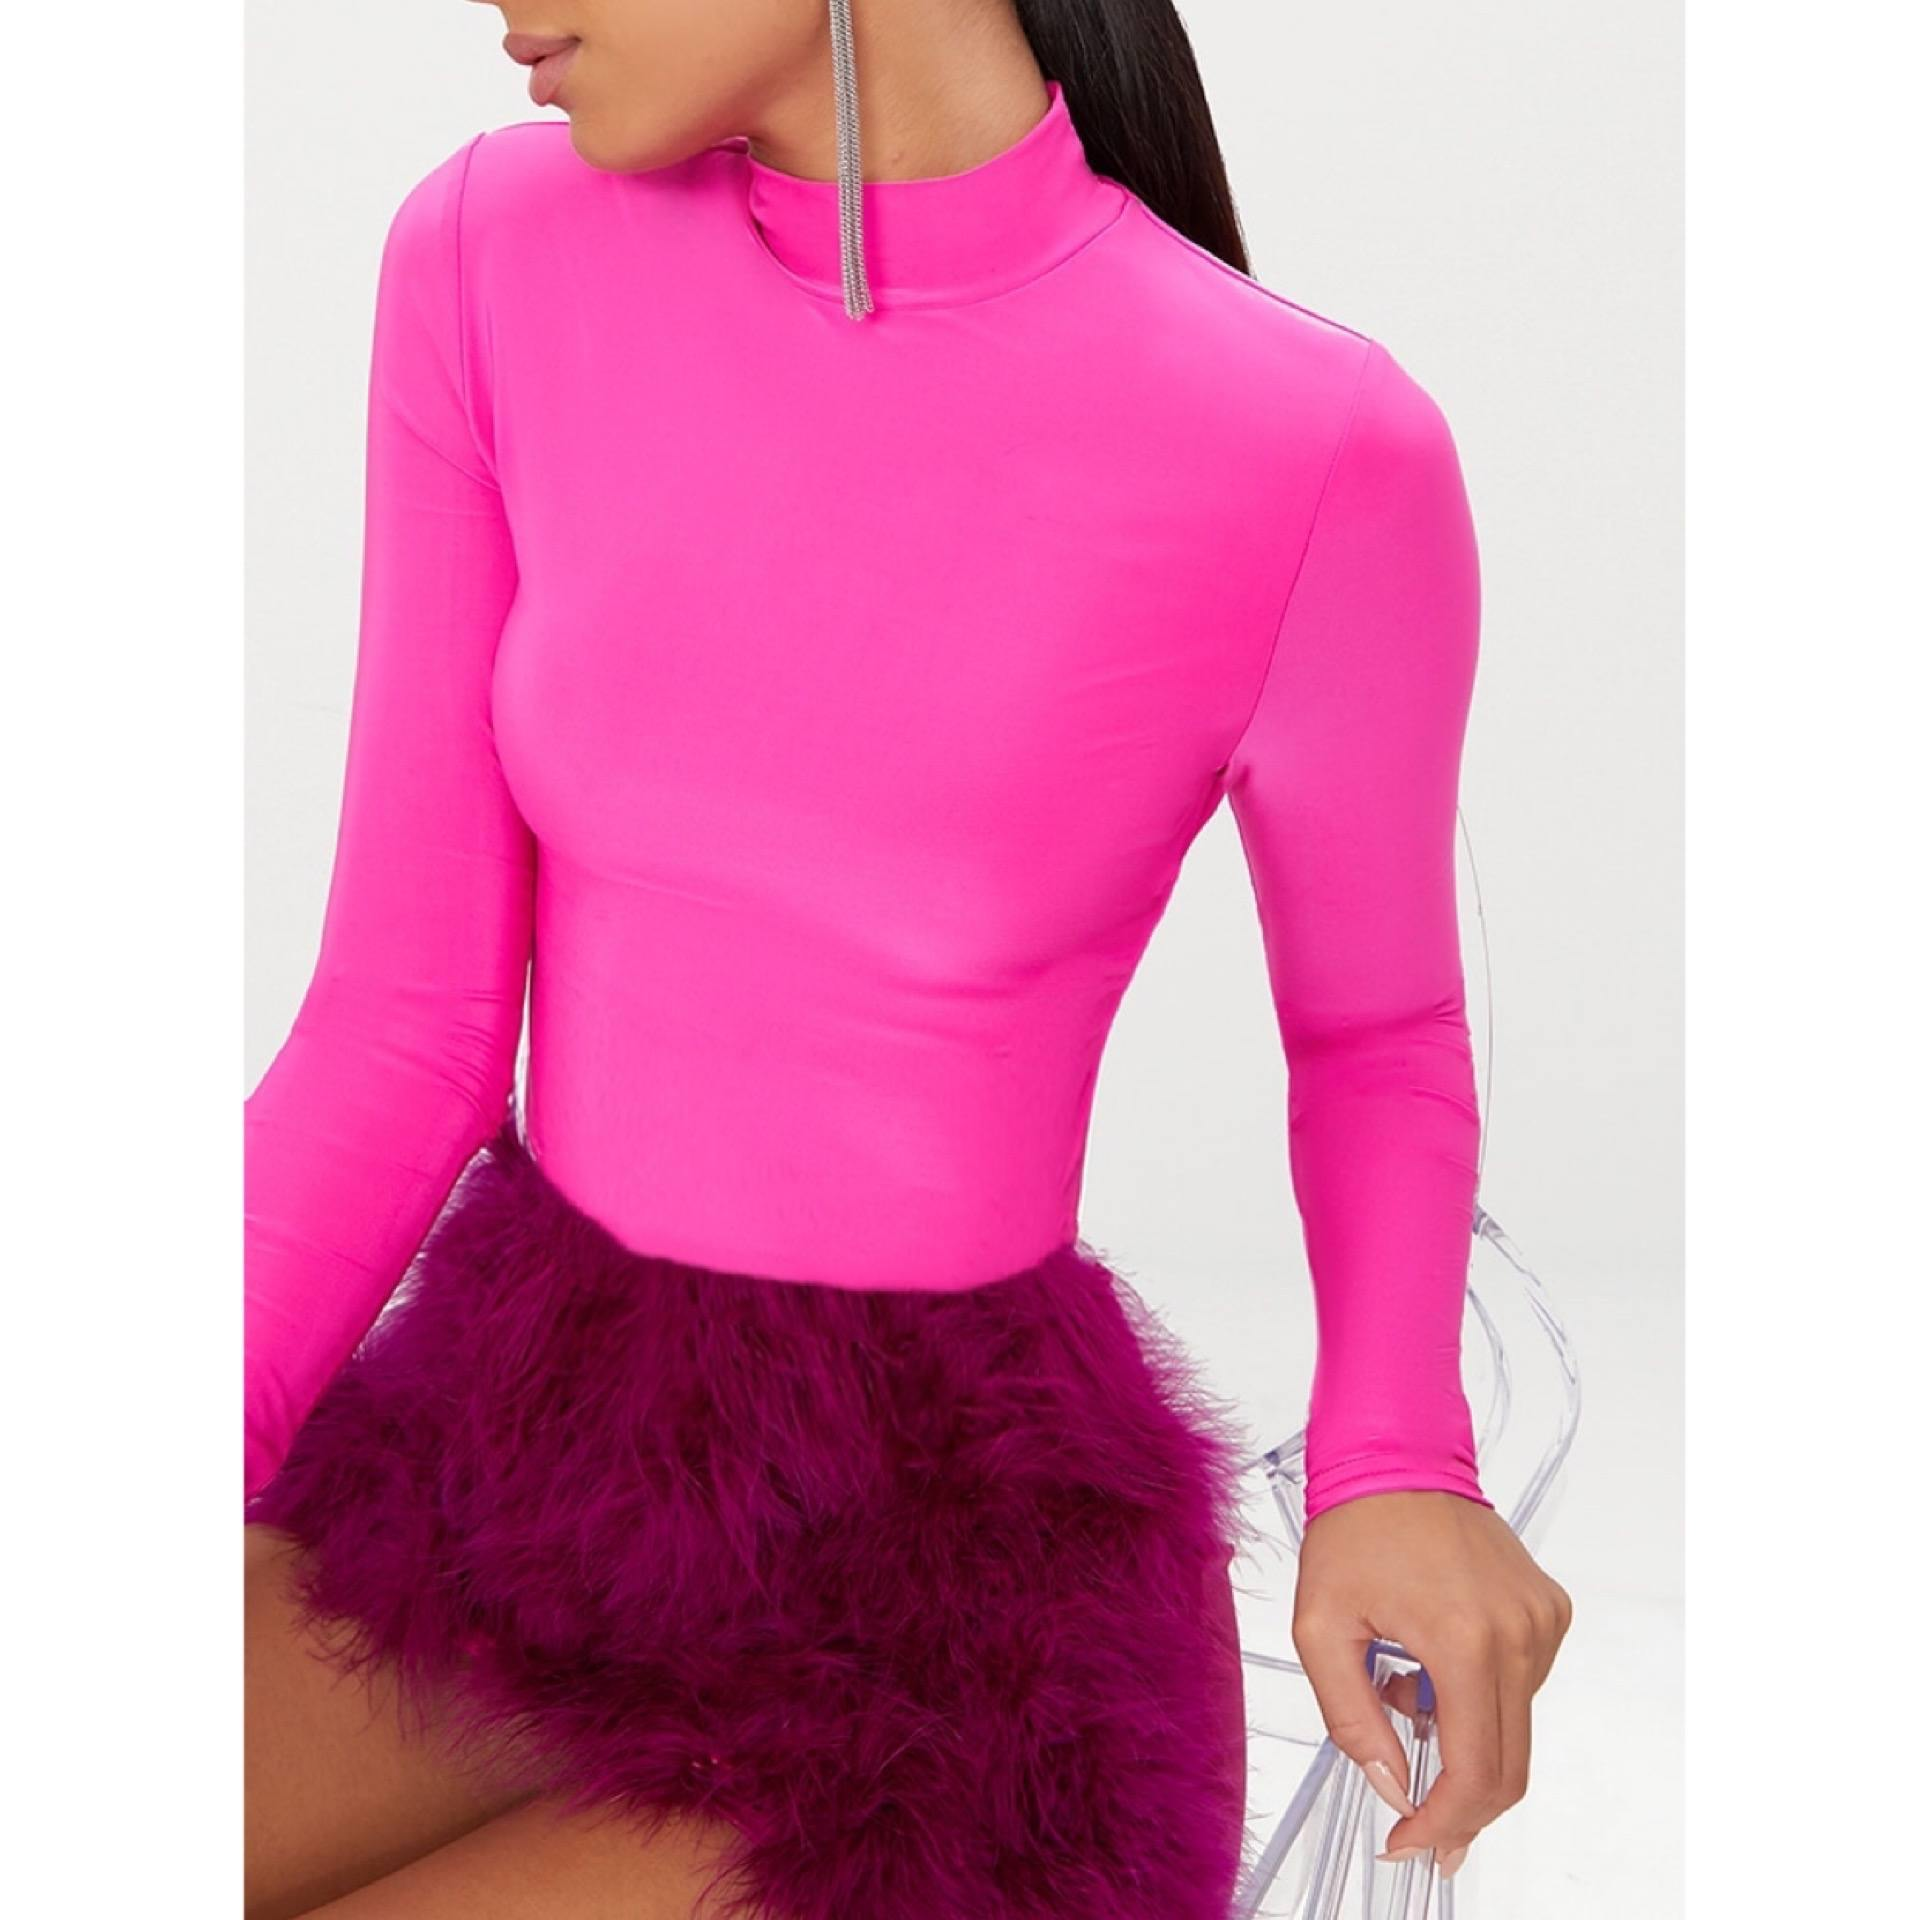 Pink Fuchsia Turtleneck Top